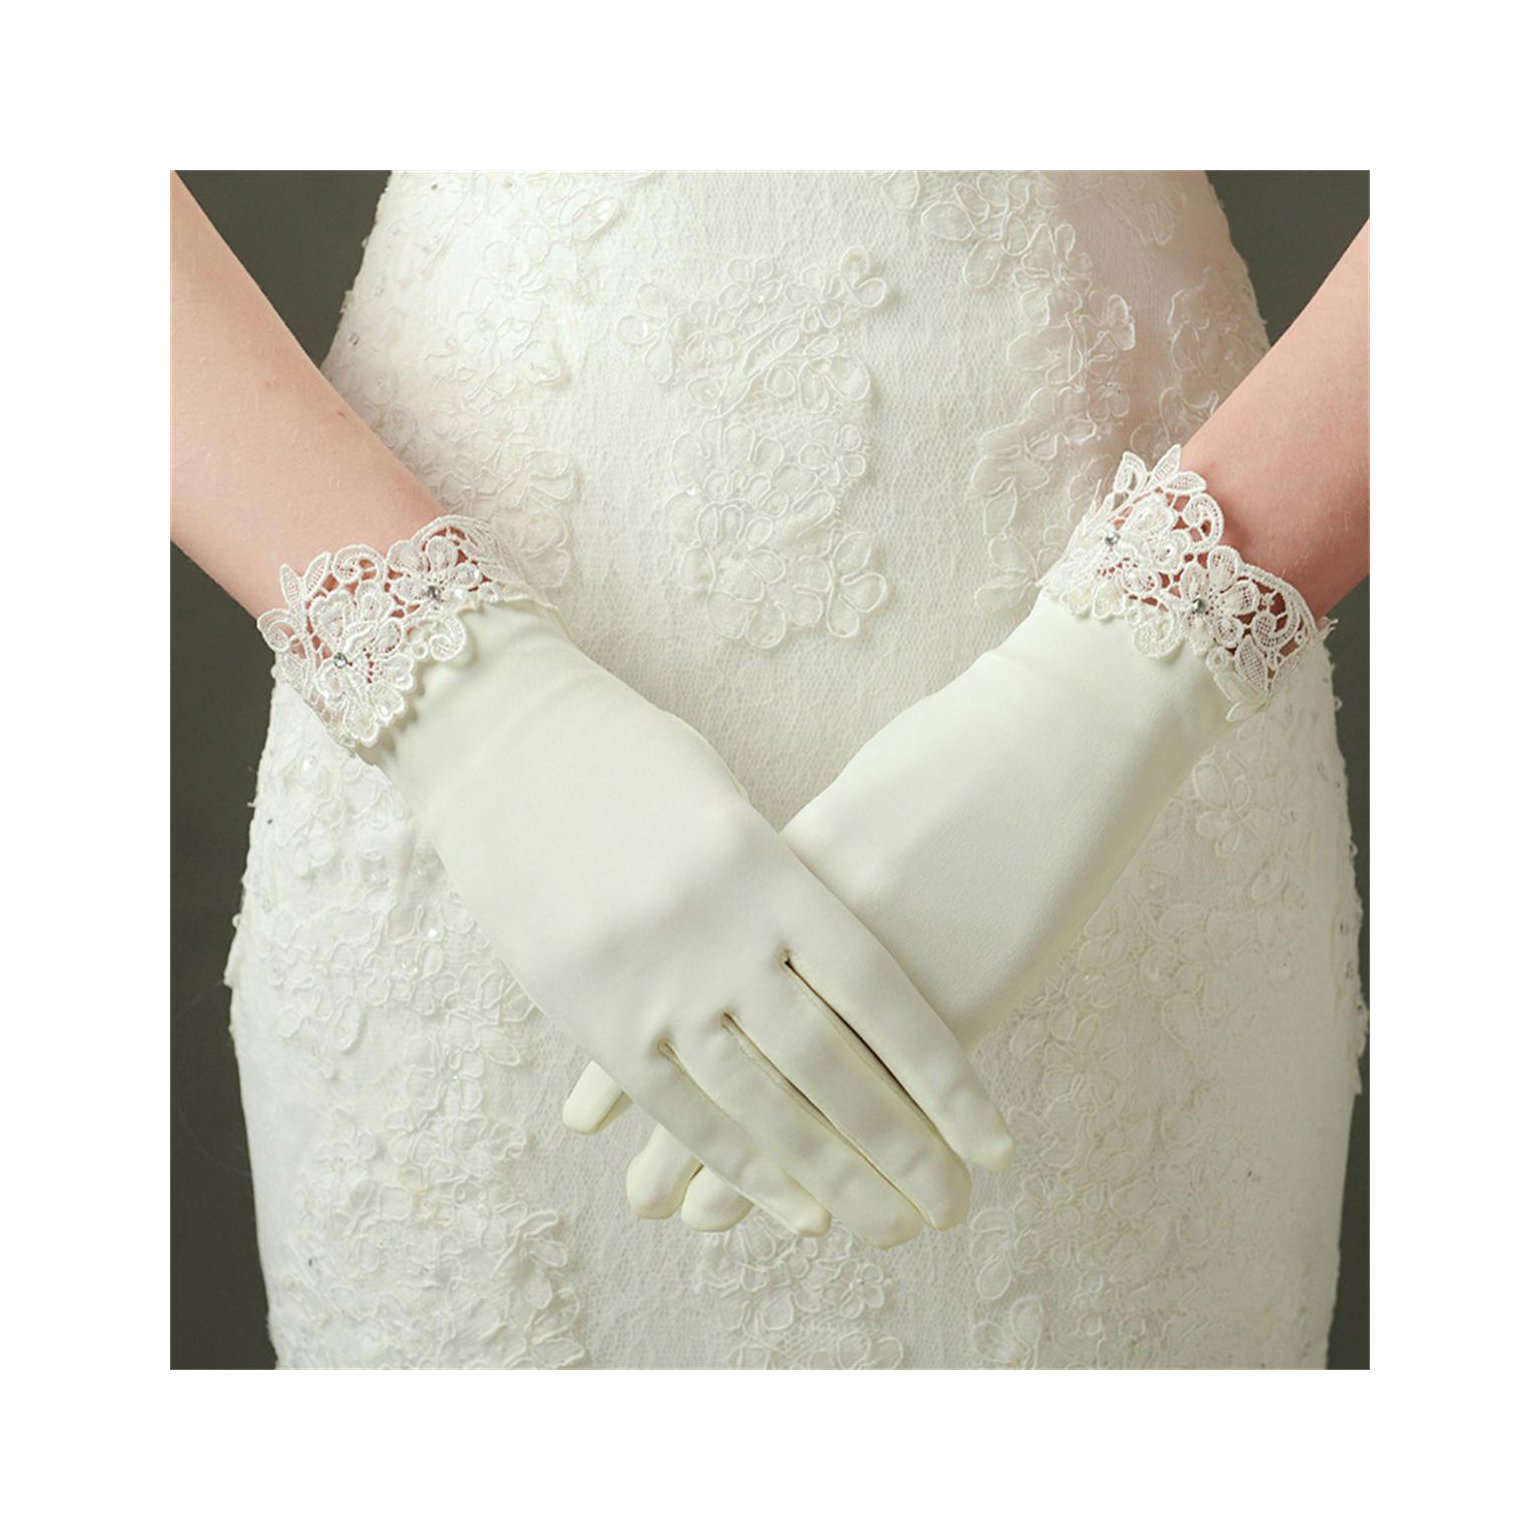 MissDaisy Dull Matte Satin Bride Gloves Ivory Lace Edge Party Short Dress Gloves by MissDaisy (Image #1)